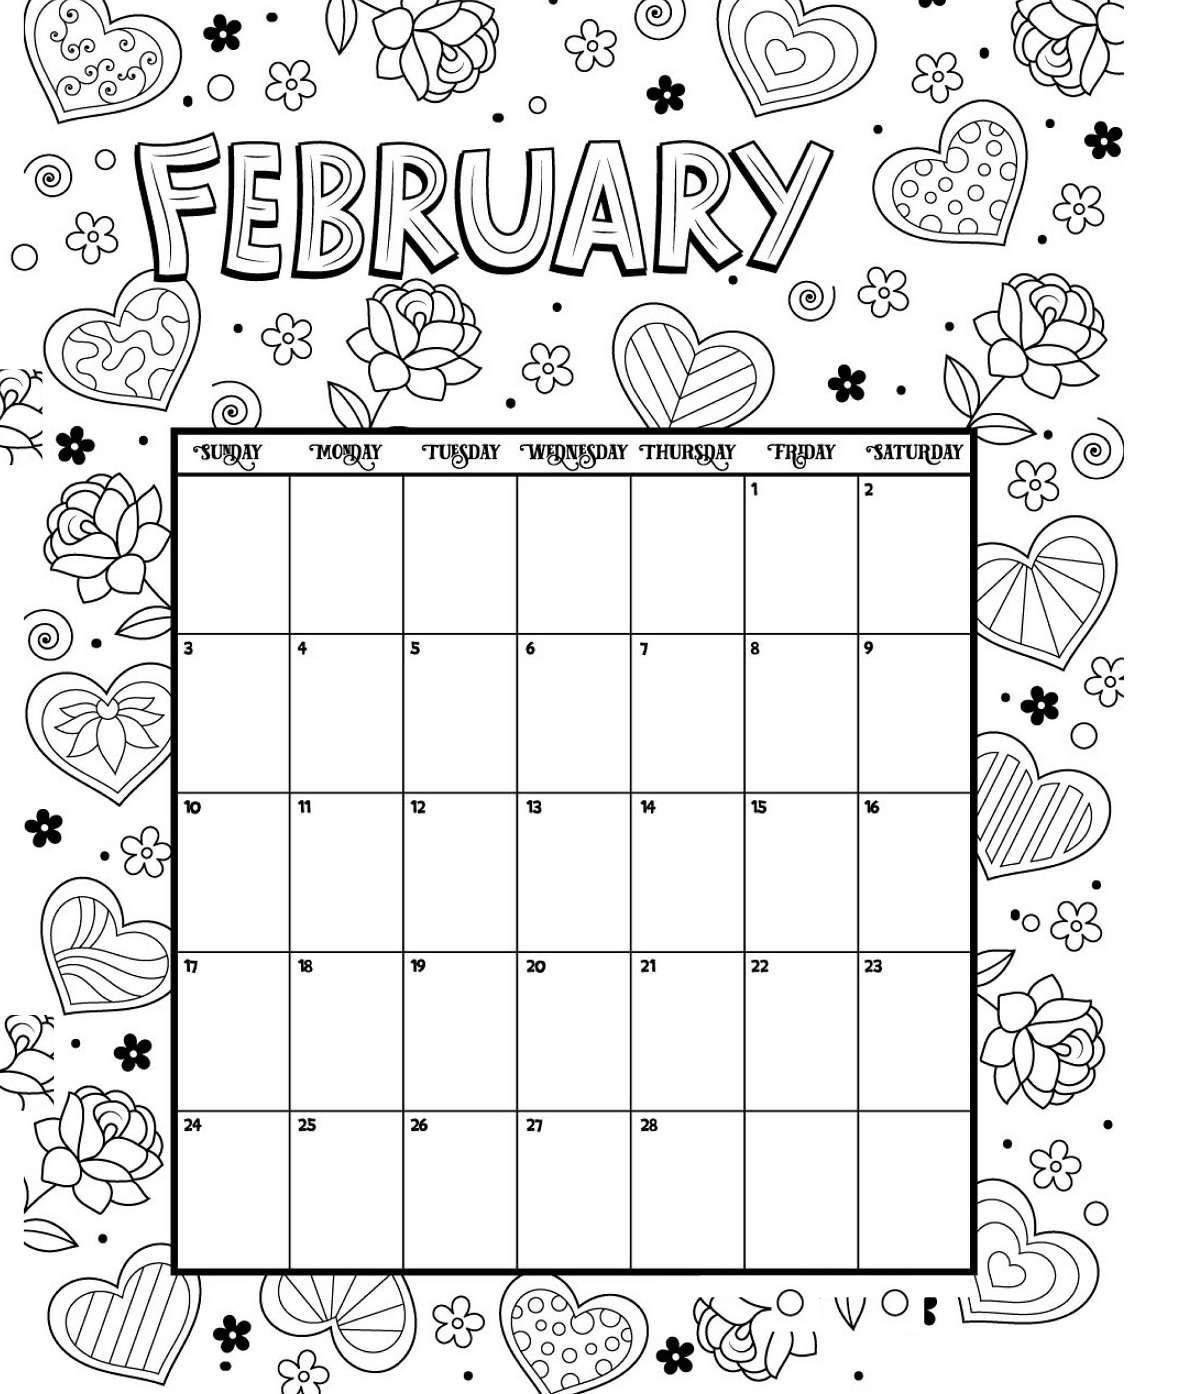 February Printable Coloring Calendar 2019 Coloring Calendar Valentine Coloring Pages Printable Coloring Pages